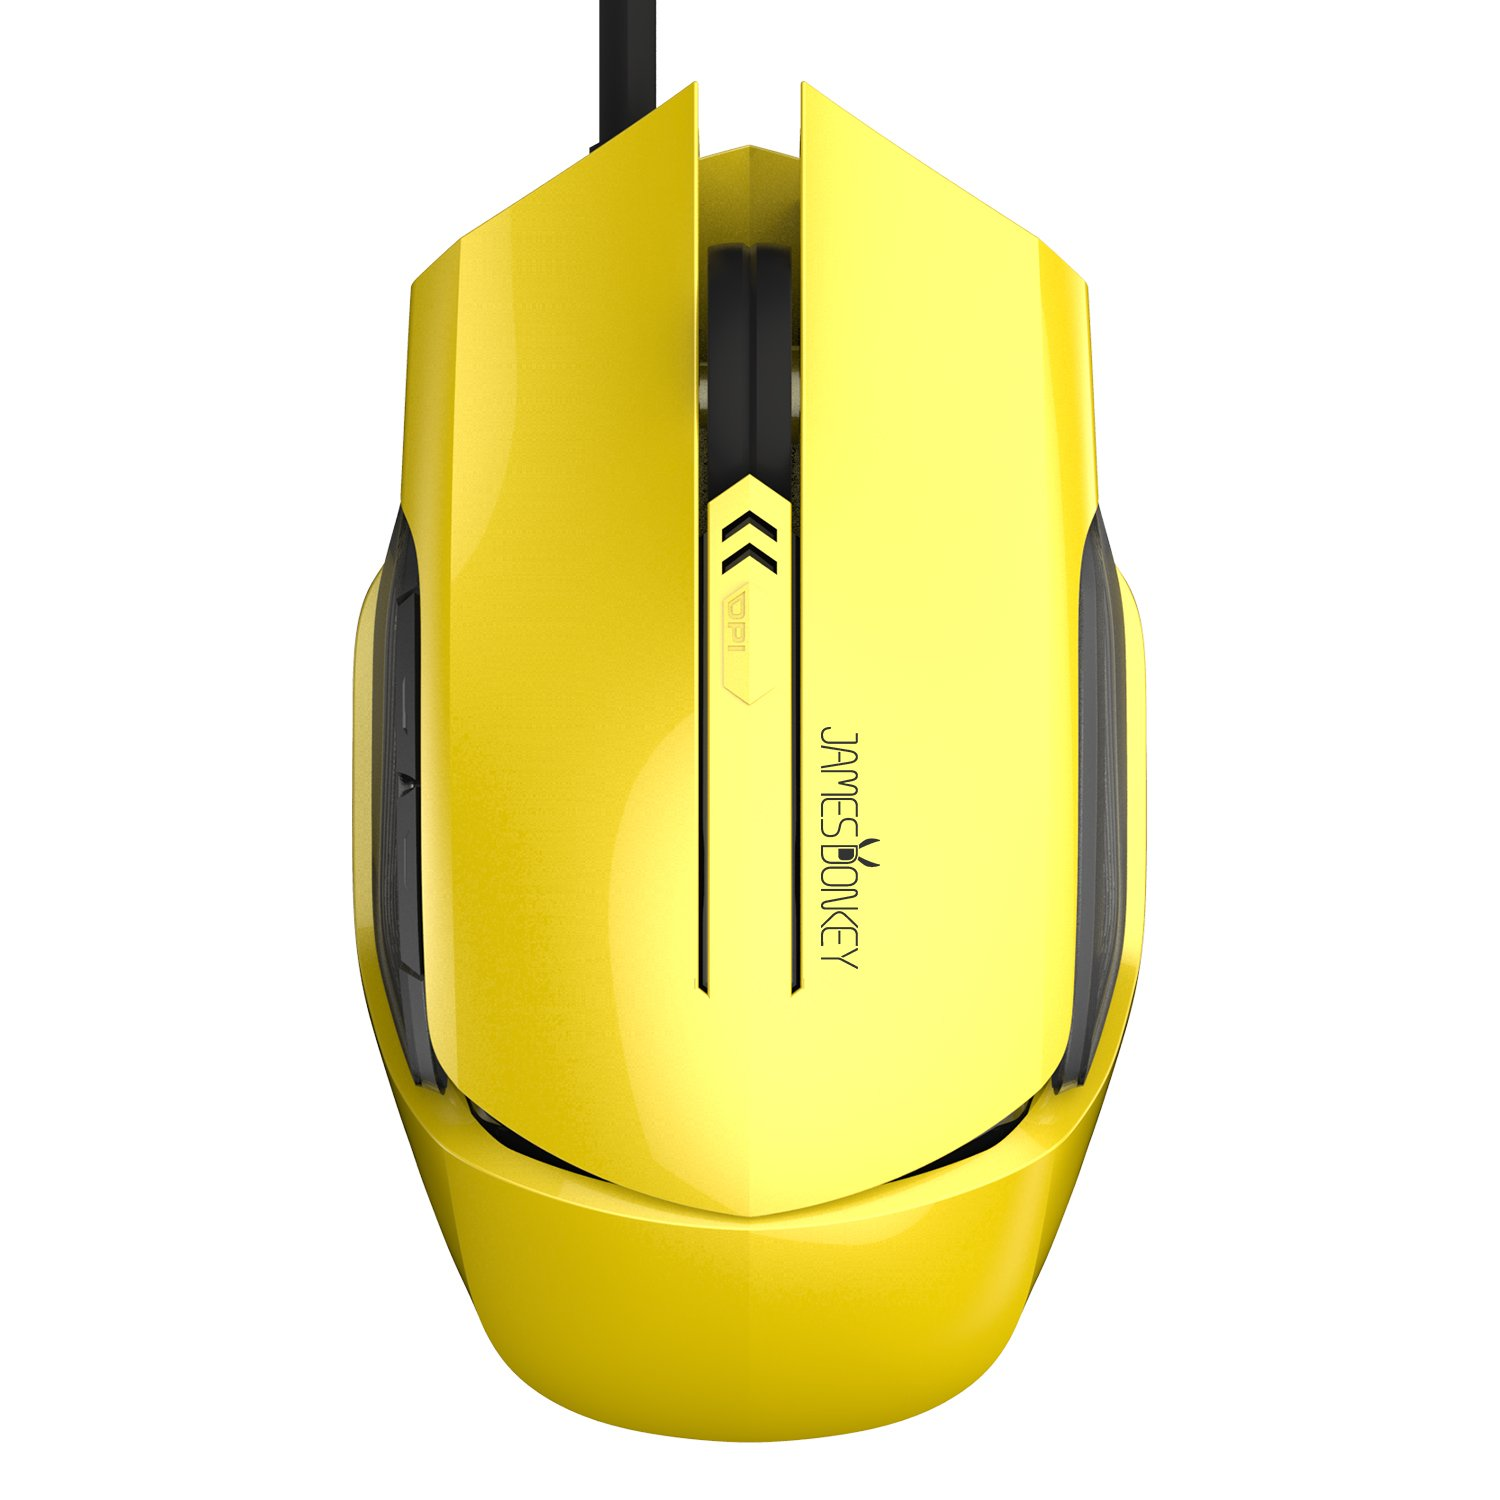 James Donkey USB Wired Gaming Mice with Adjustable 1000-2500 DPI,6 Butoons LED Optical Mouse for Pro Game Notebook PC Laptop(112C Yellow)